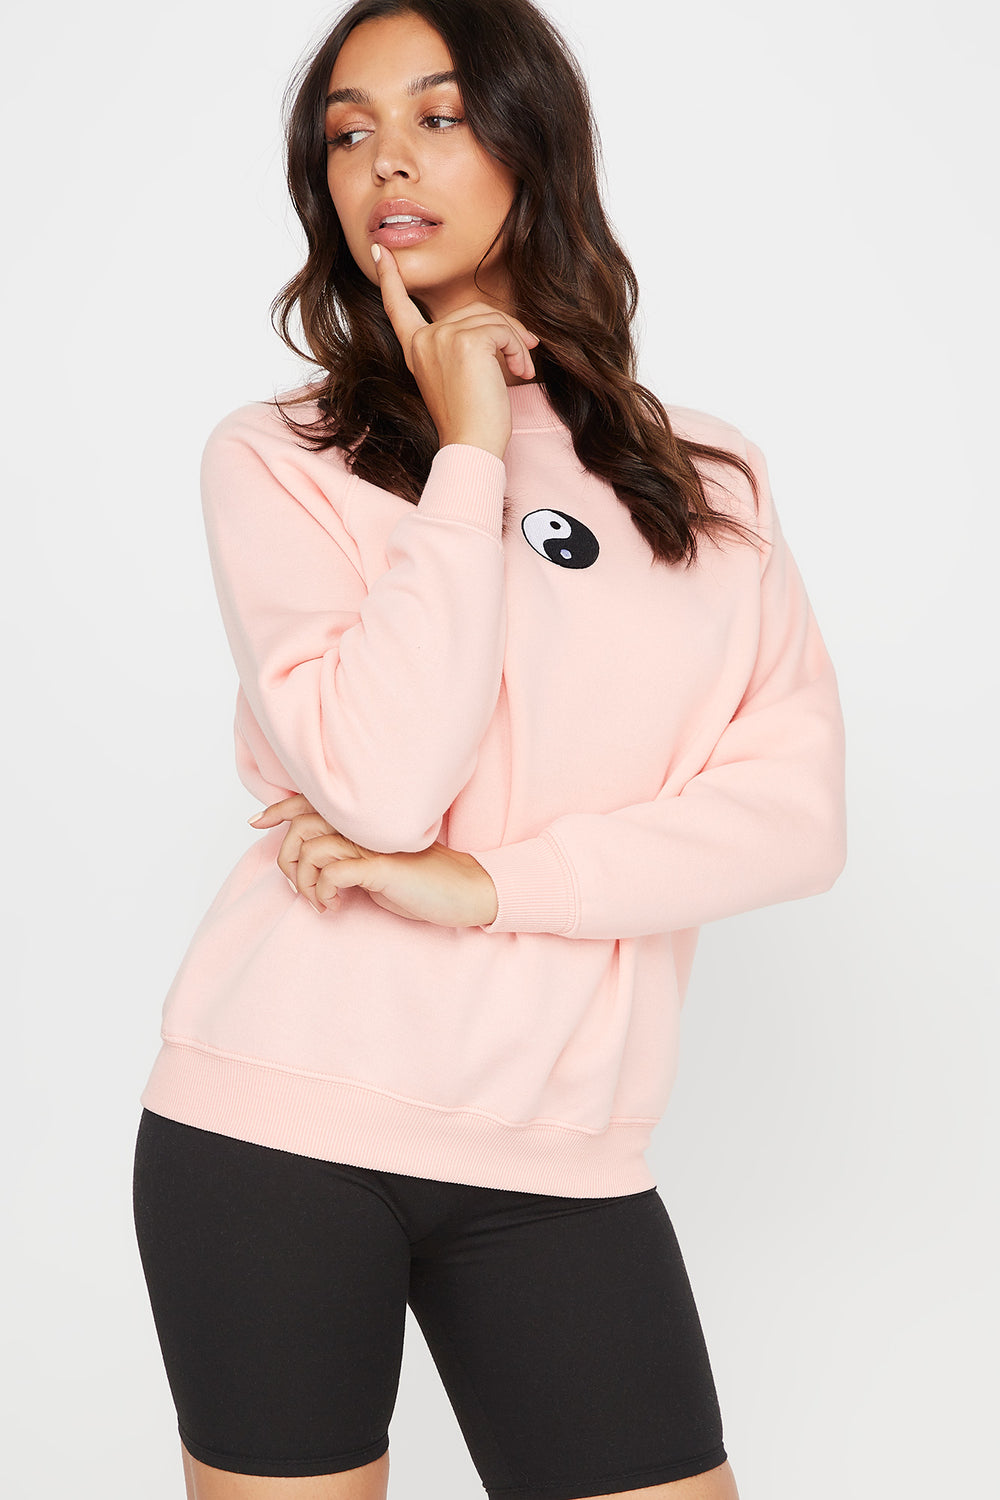 Embroidered Yin-Yang Graphic Crew Neck Sweater Coral